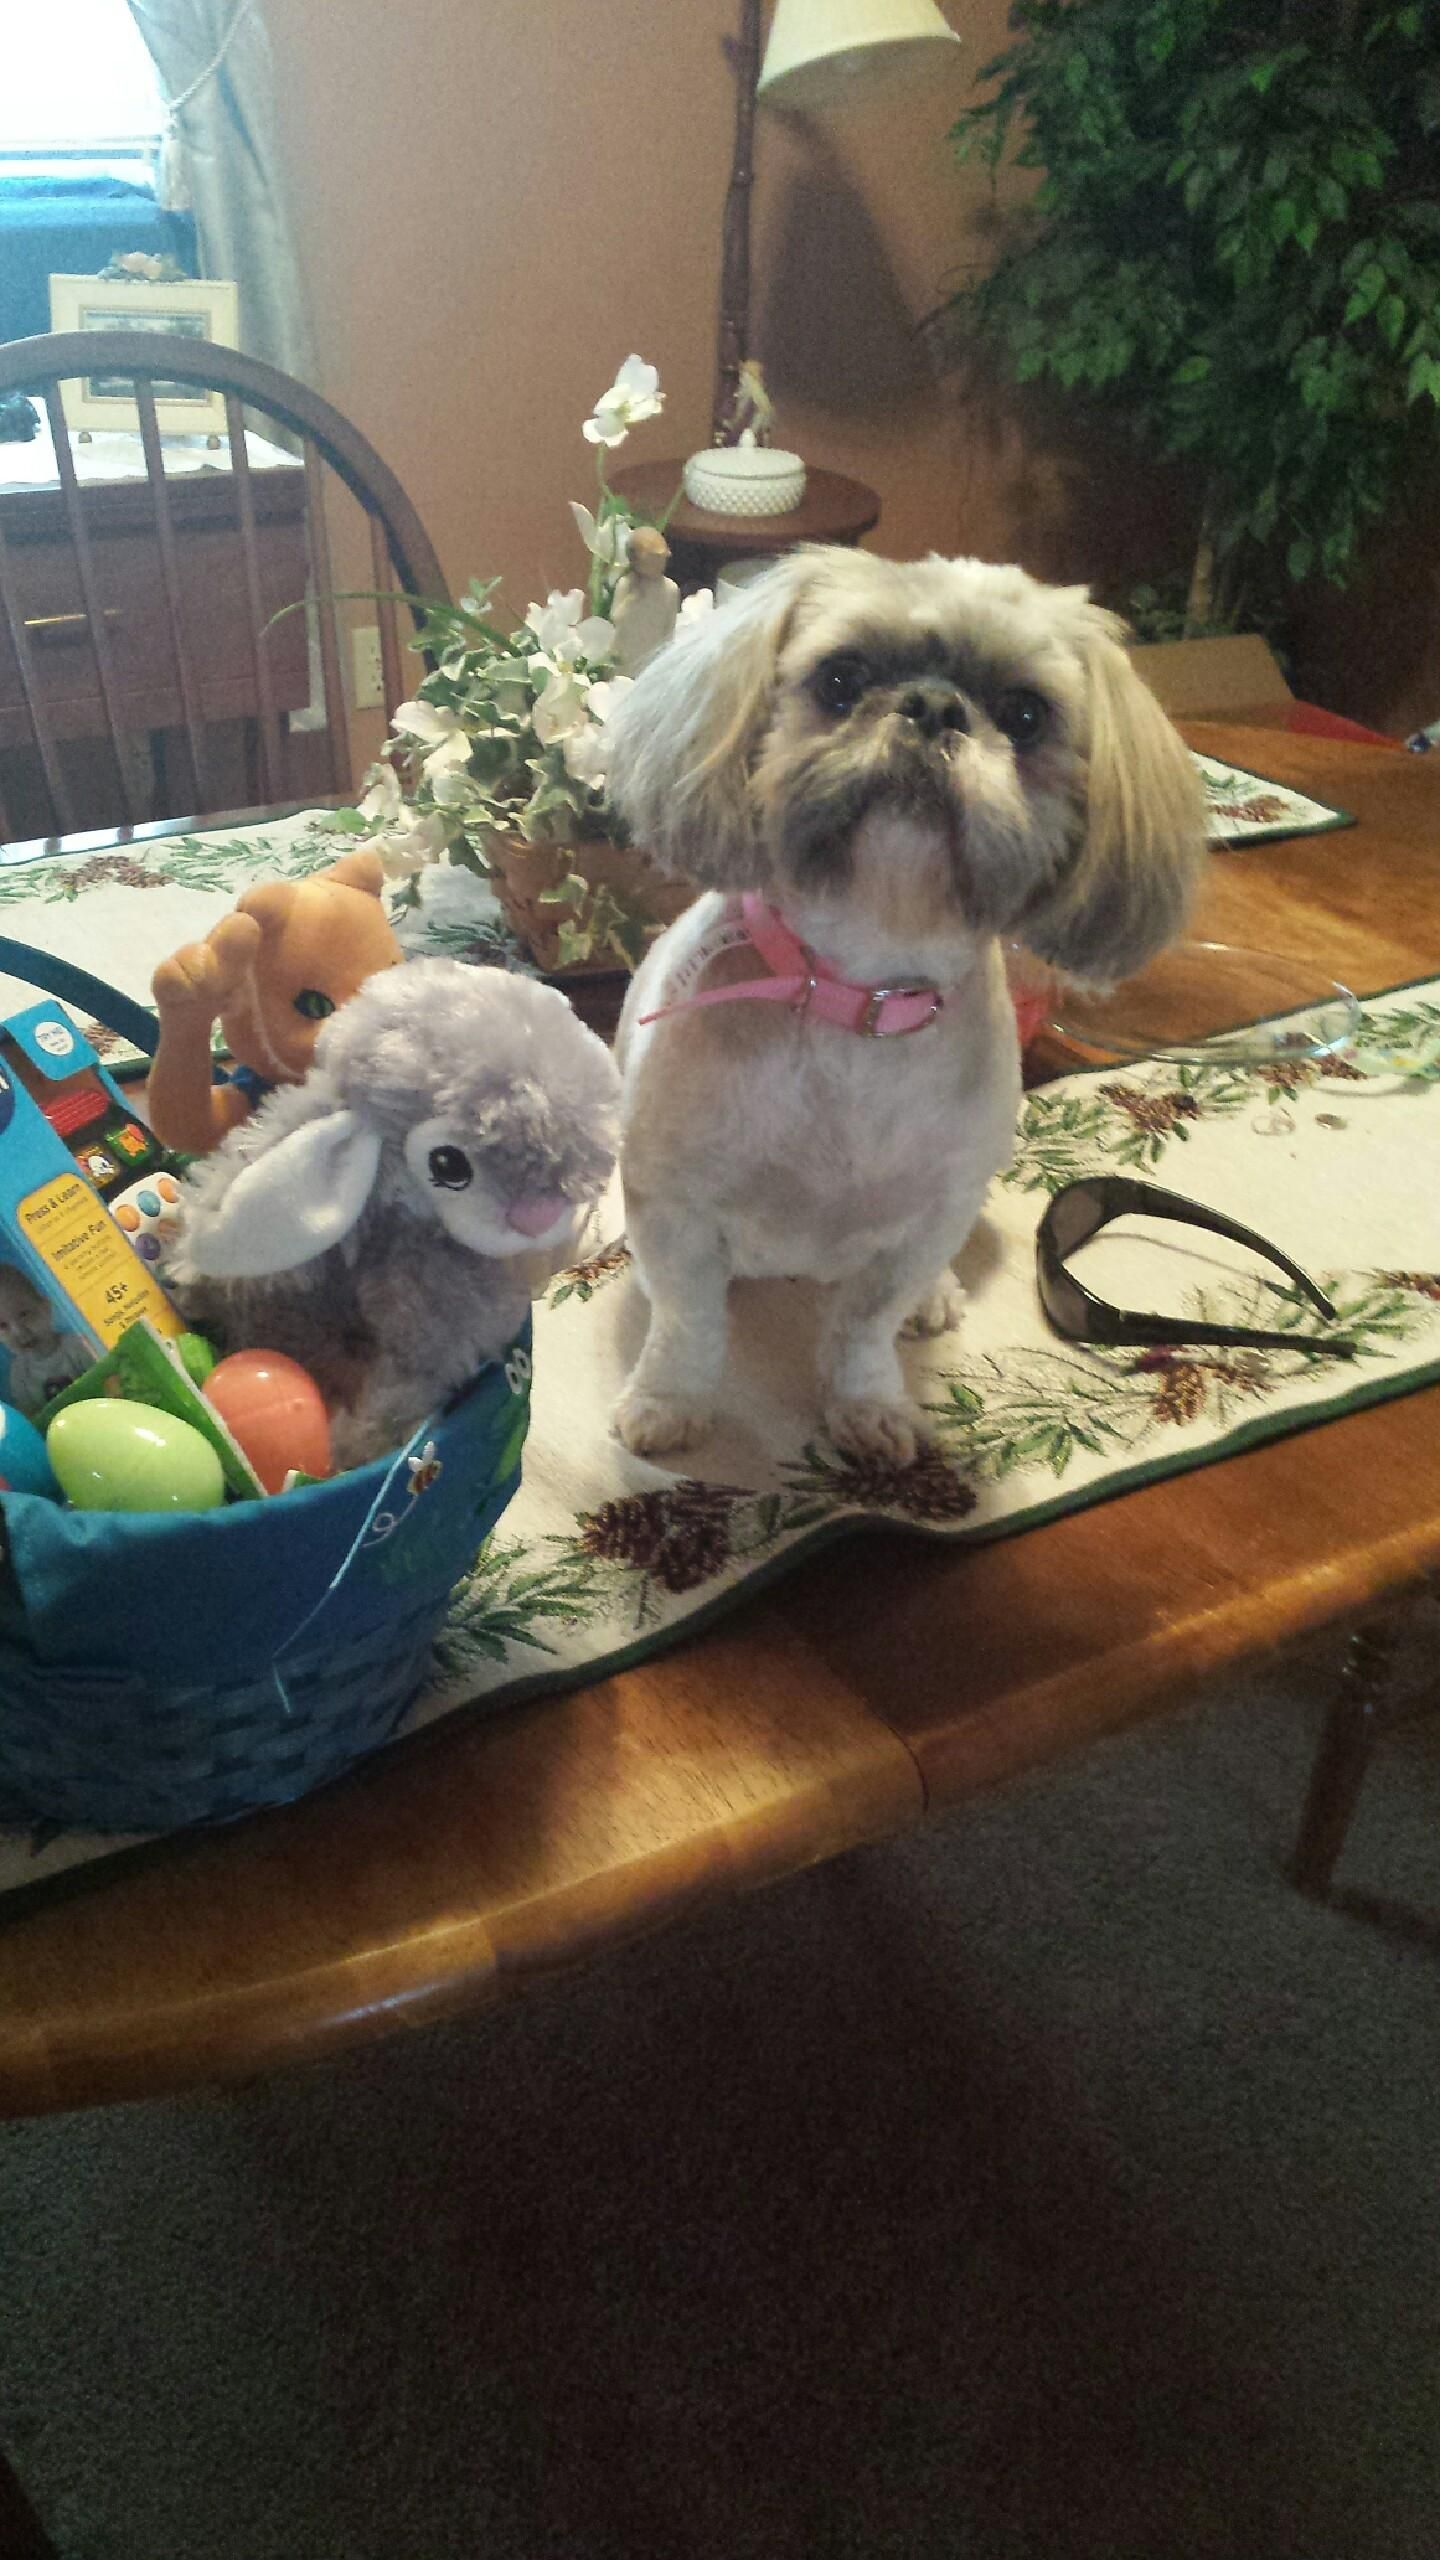 My girlfriends darling baby maggie beside easter basket 2015 my girlfriends darling baby maggie beside easter basket 2015 negle Images